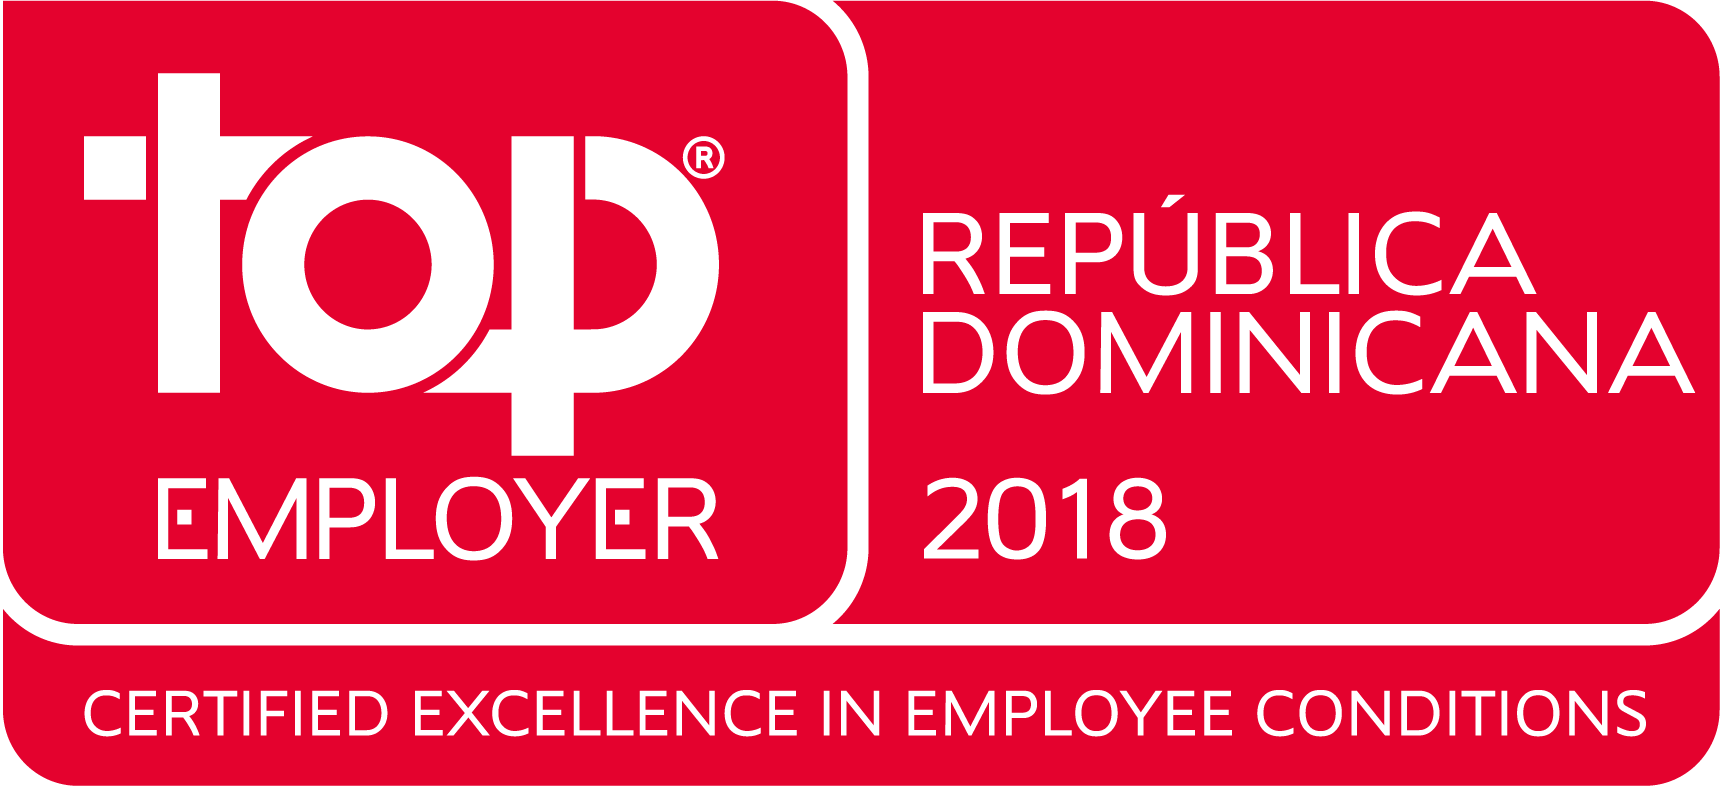 Top_Employers_Dominican_Republic_2018